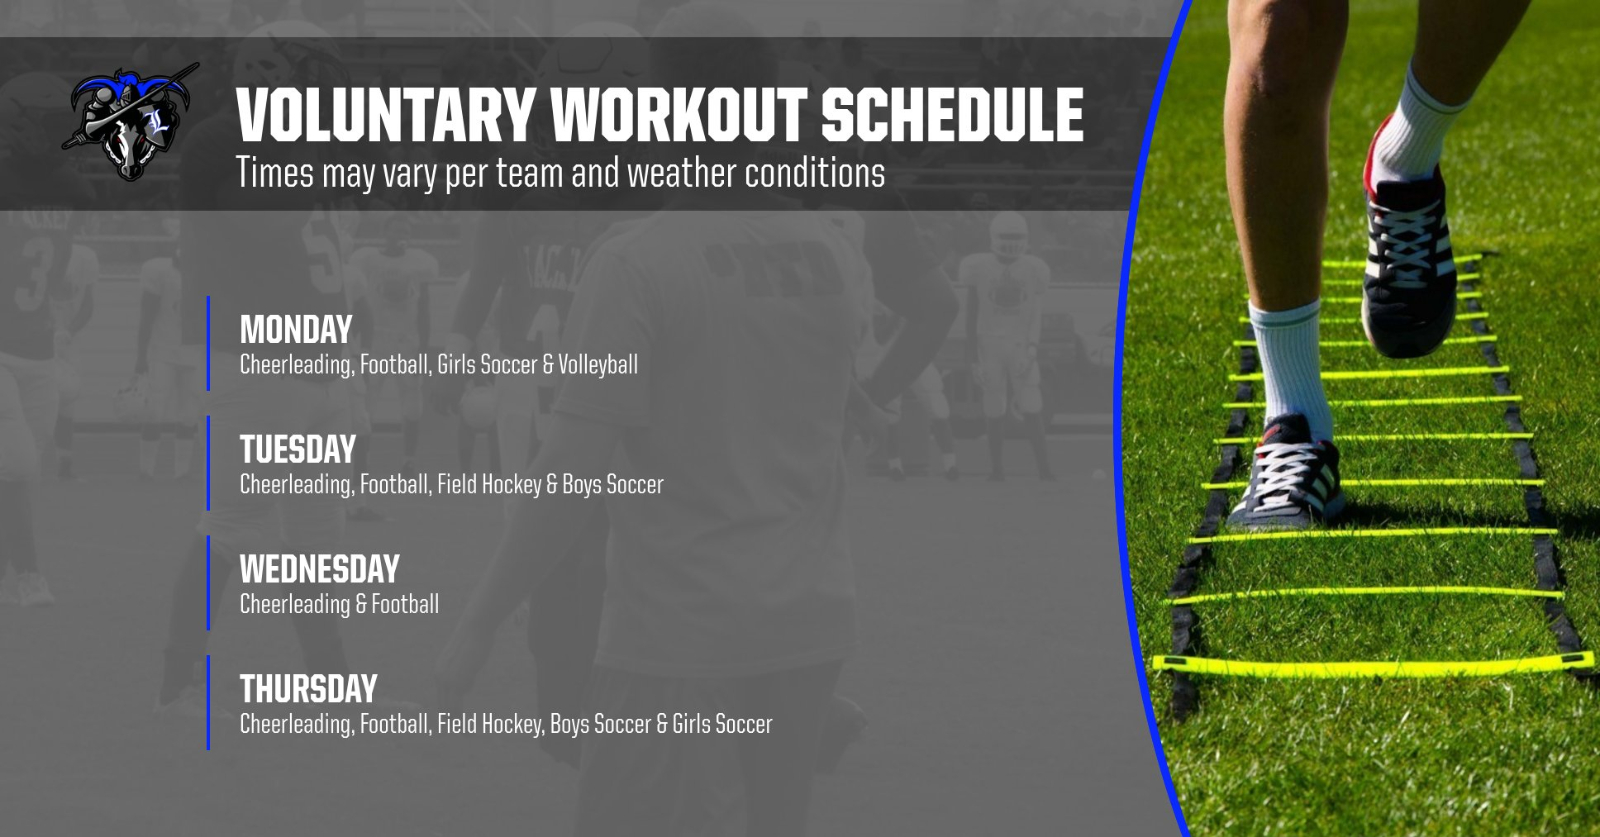 Voluntary Workout Schedule